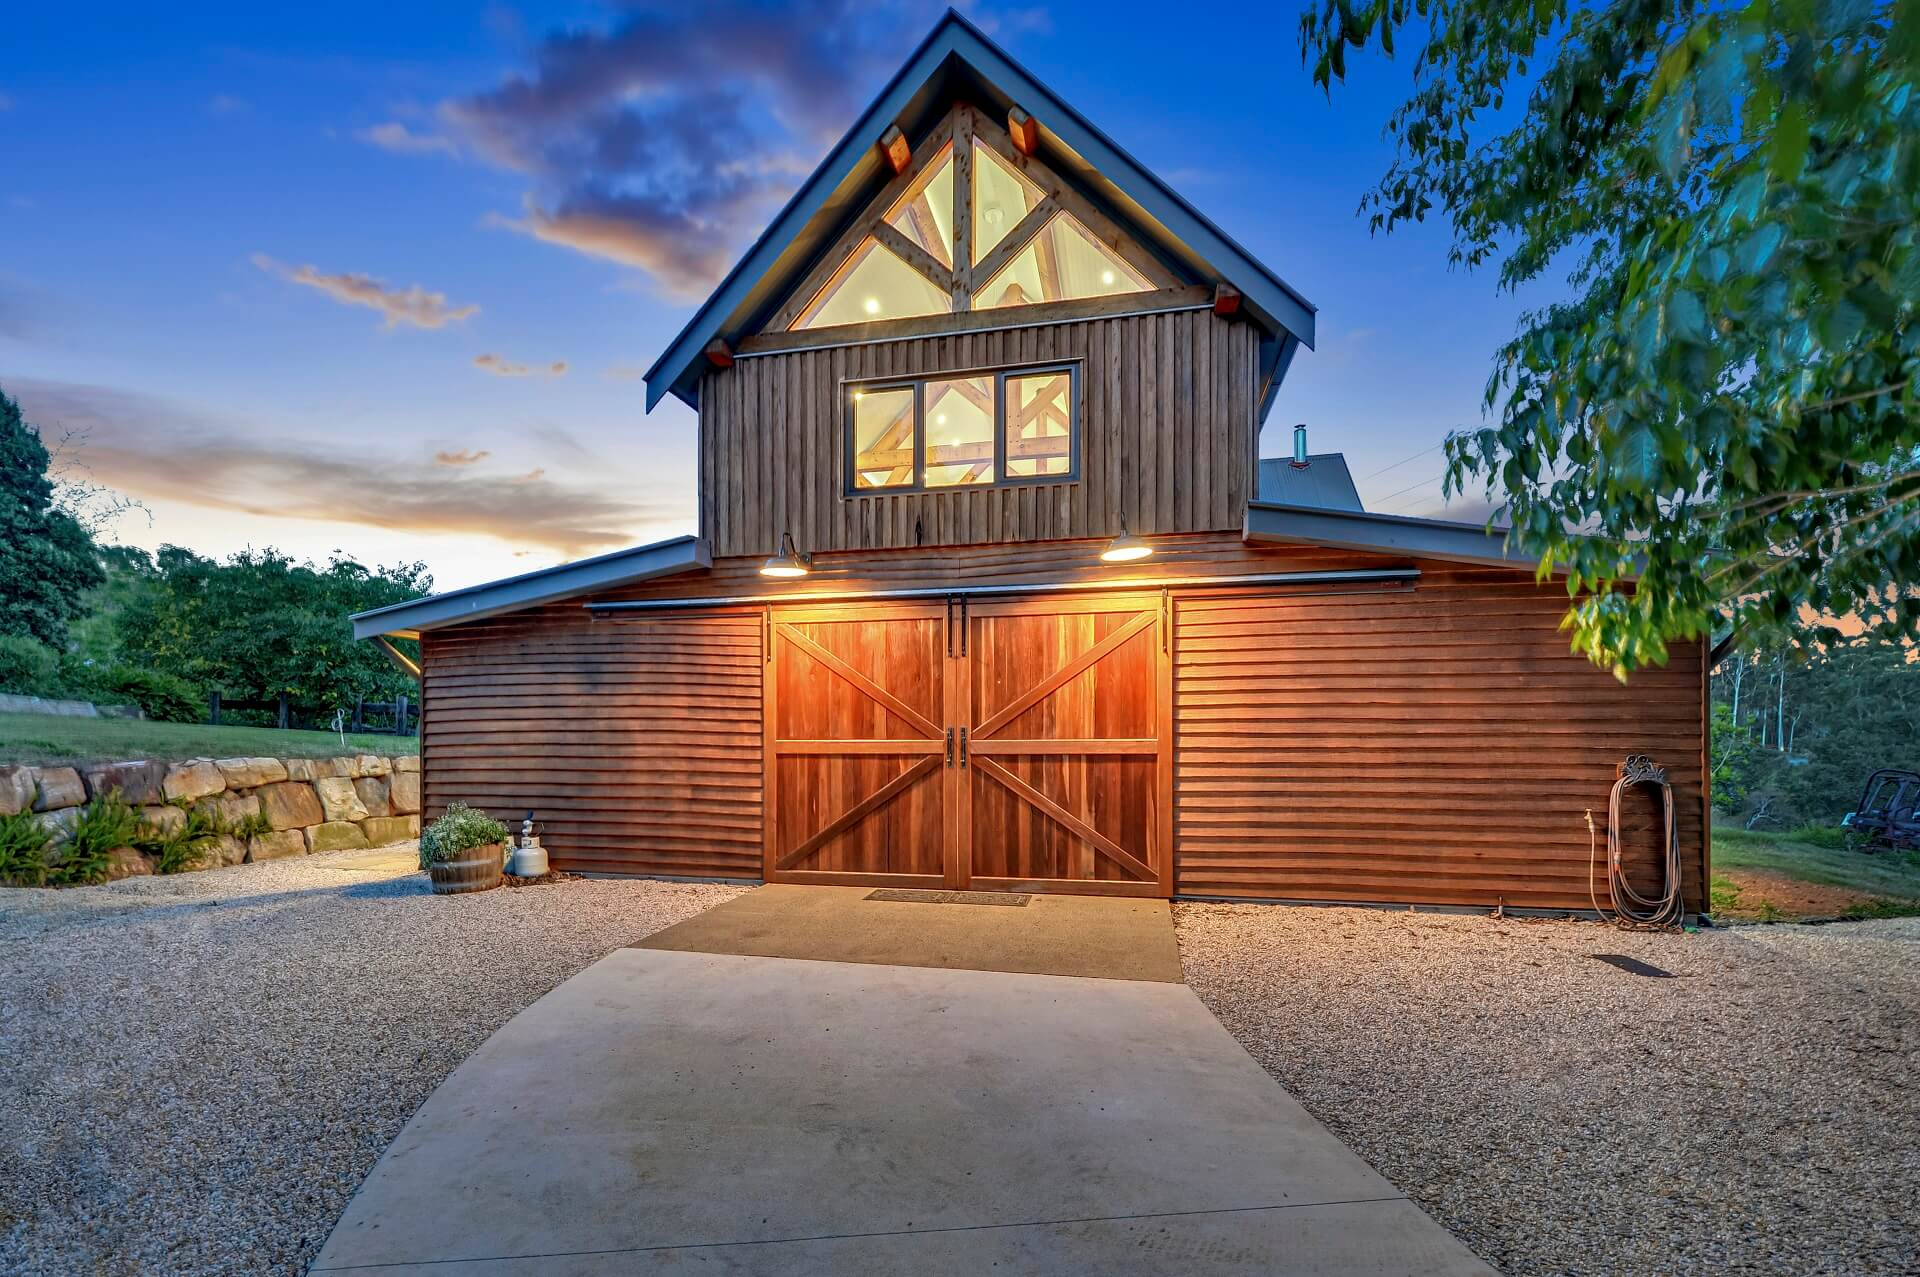 Luxury timber barn exterior feauturing large barn doors, glazed gables and timber cladding